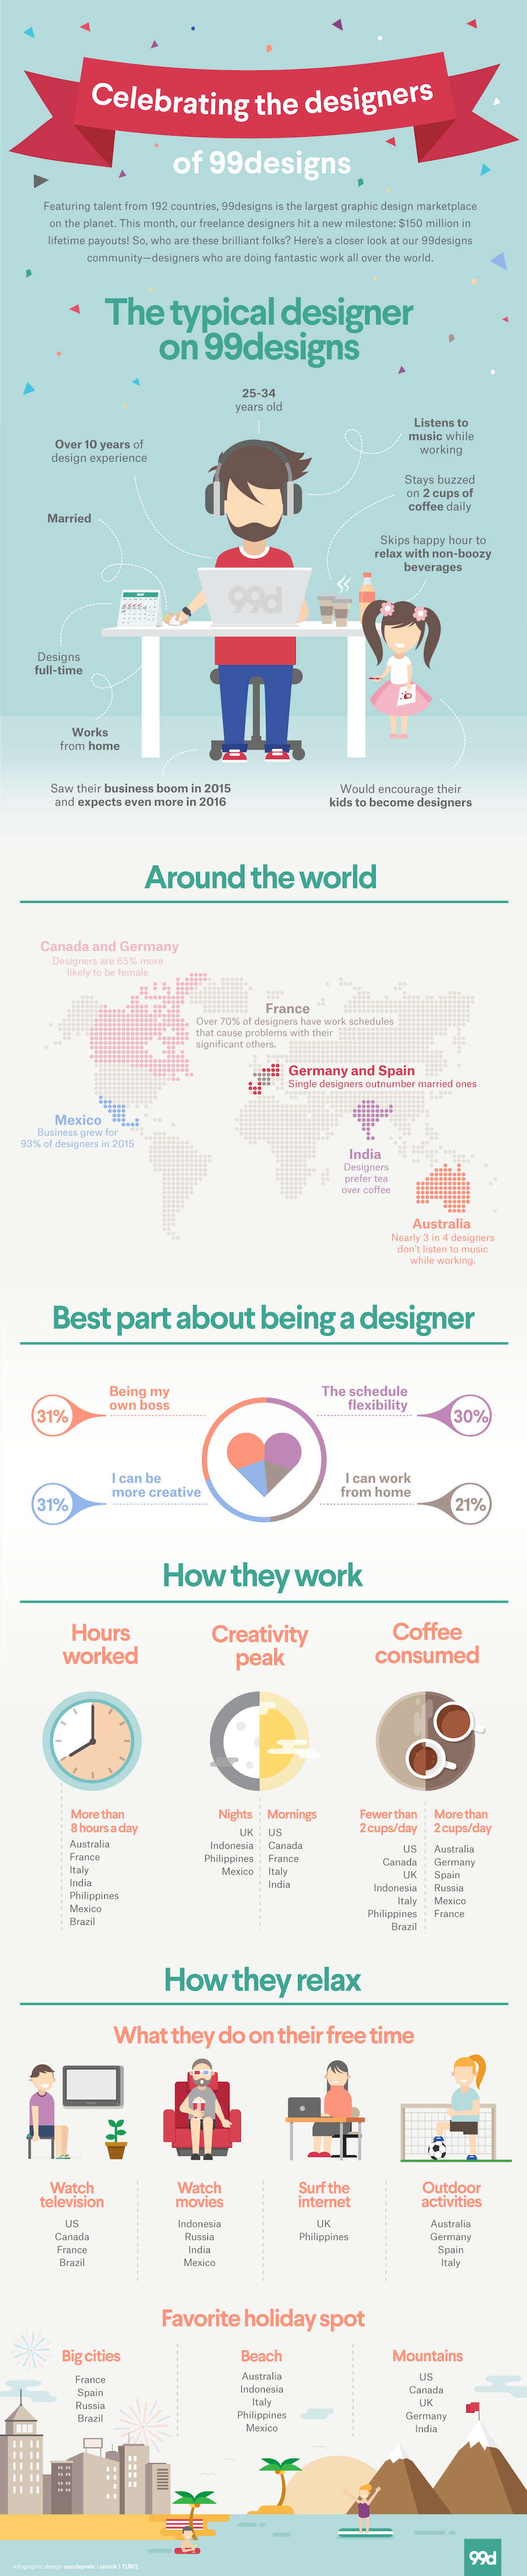 Freelance graphic designer stereotypes infographic